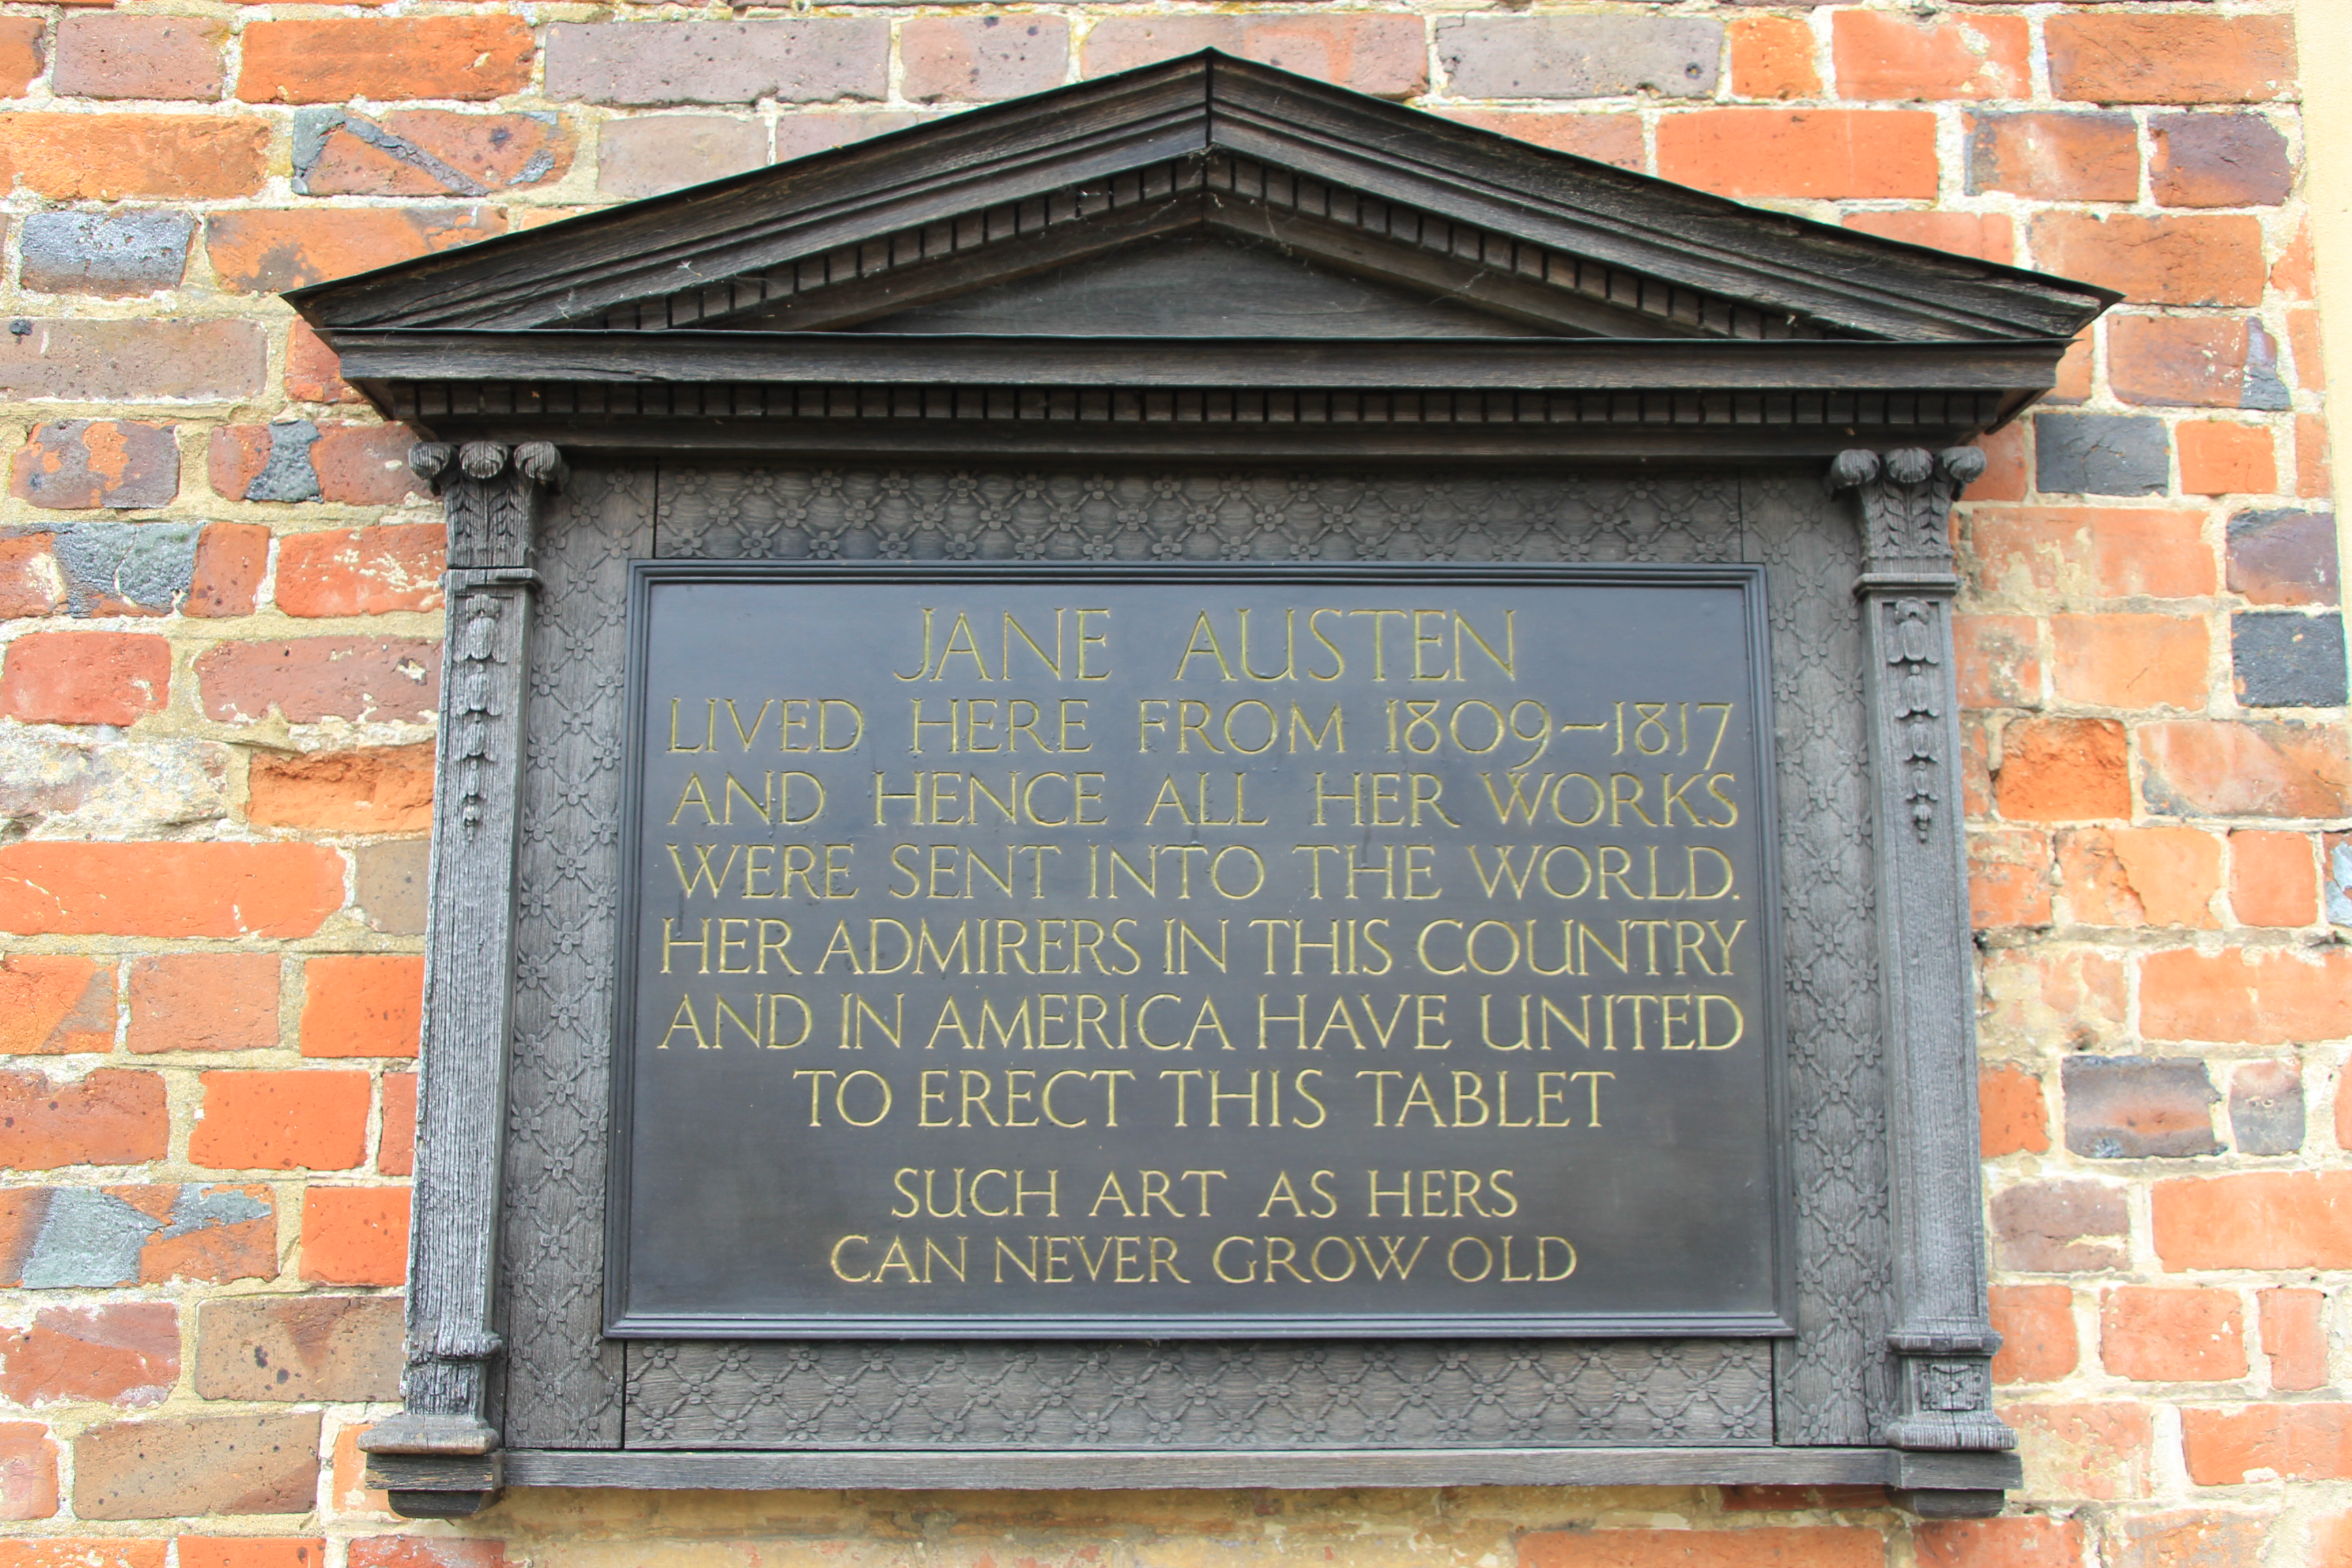 Jane Austen's House Museum memorial plaque Wibke Carter